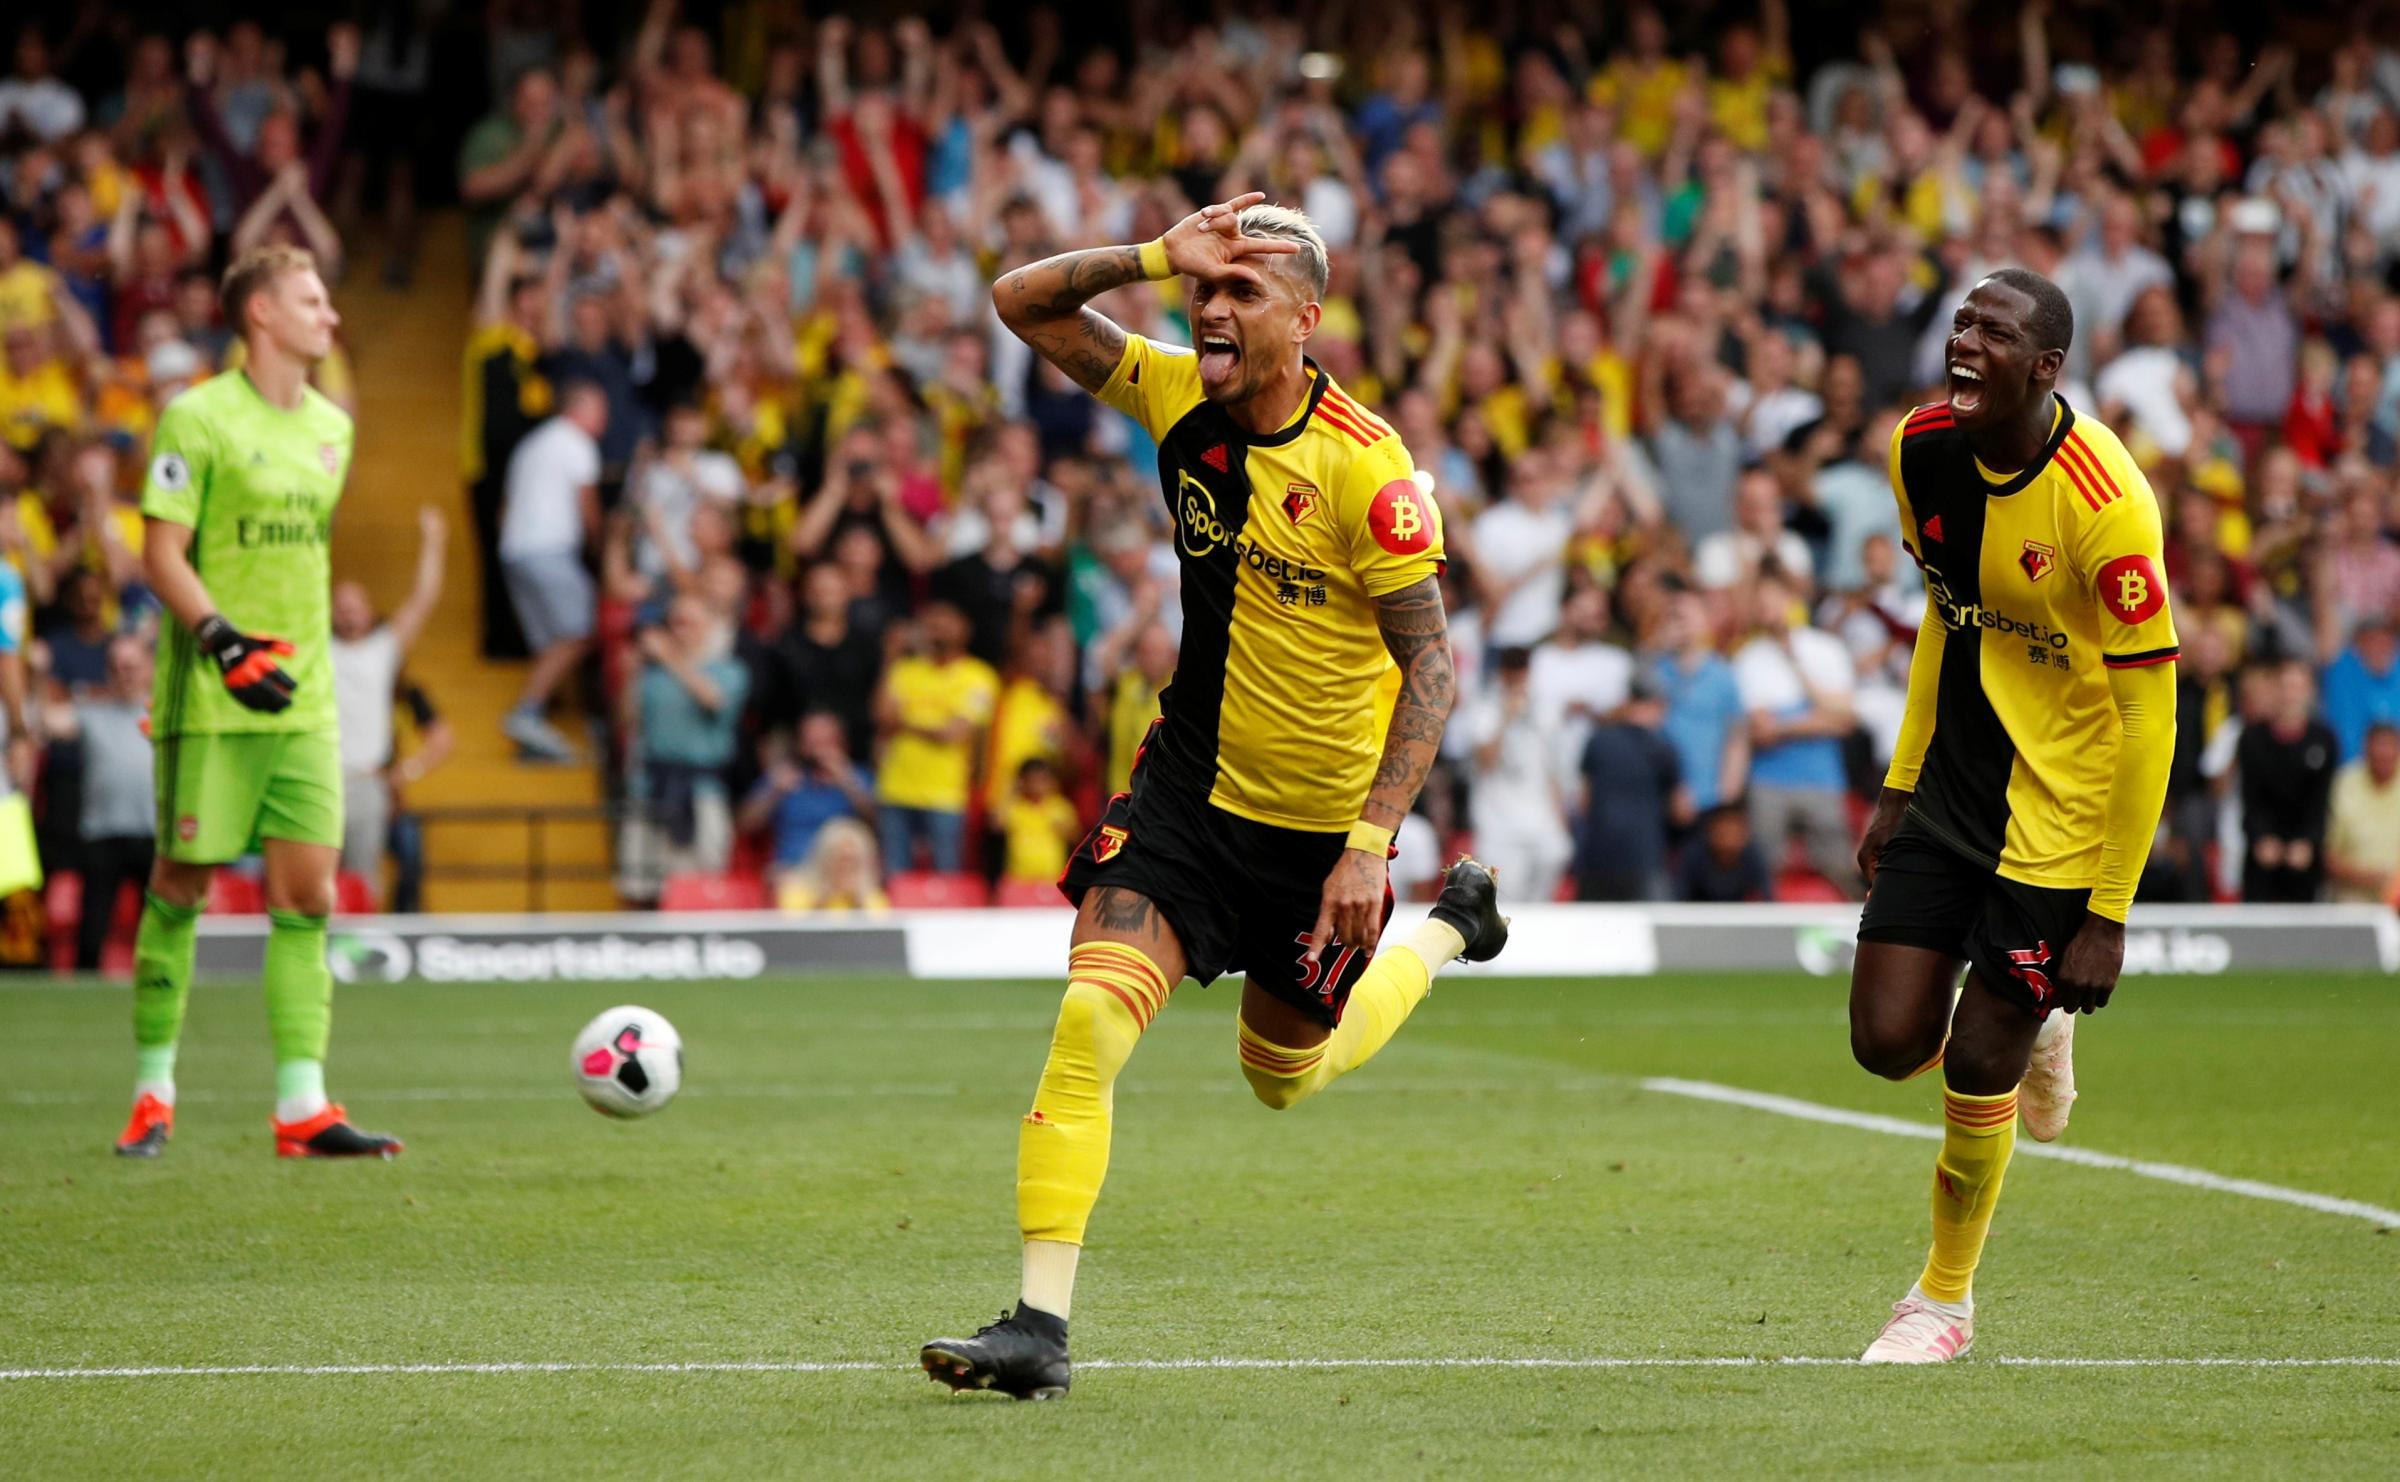 Watford players show grit in comeback against Arsenal